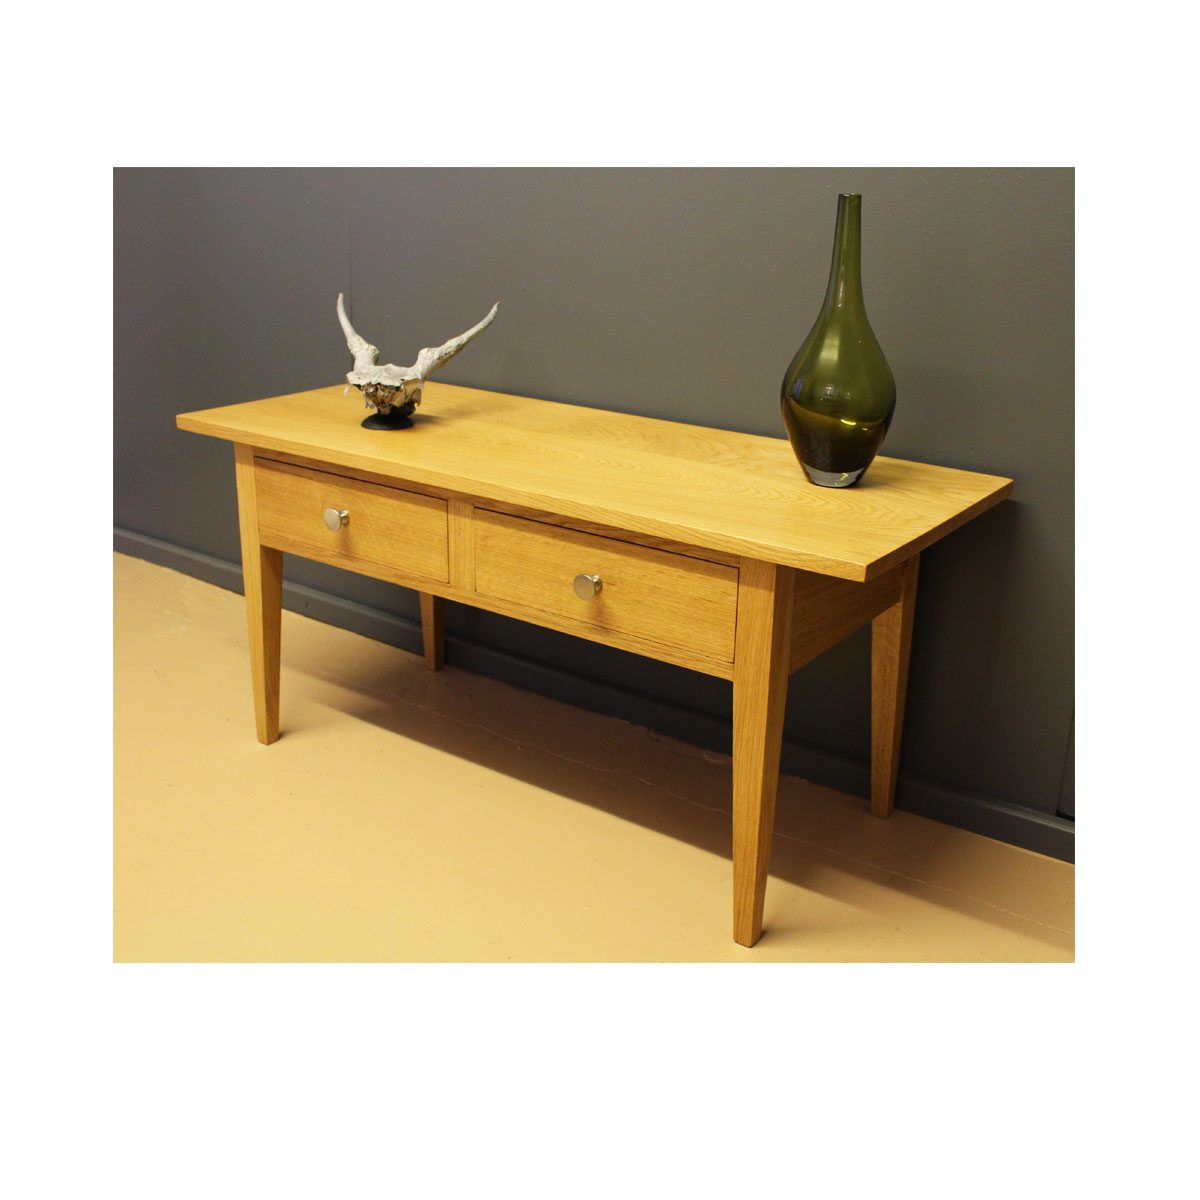 Bespoke Chiswick Coffee Table Handcrafted in Suffolk